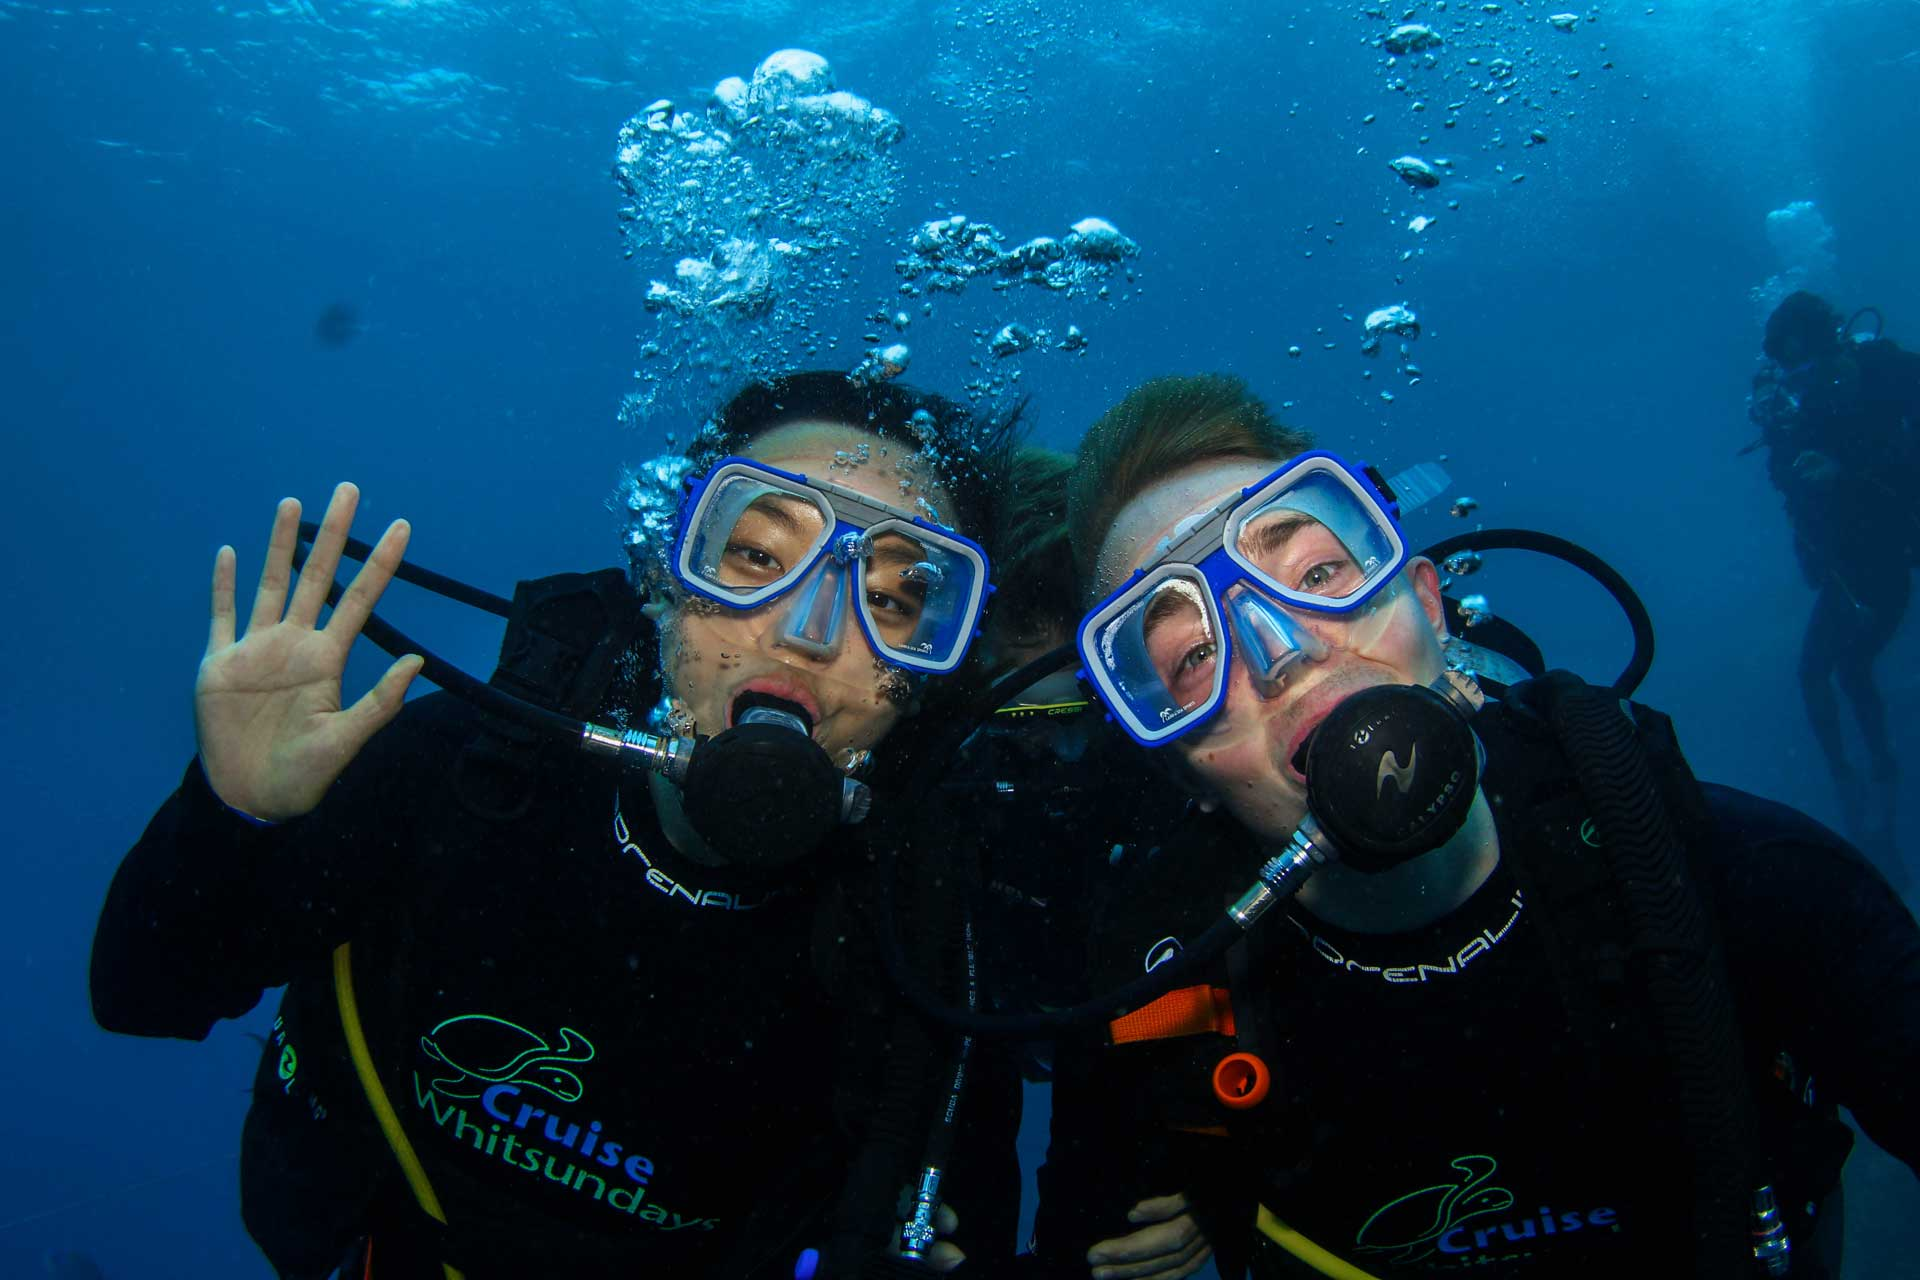 Leonie and Mattias scuba diving at the Great Barrier Reef